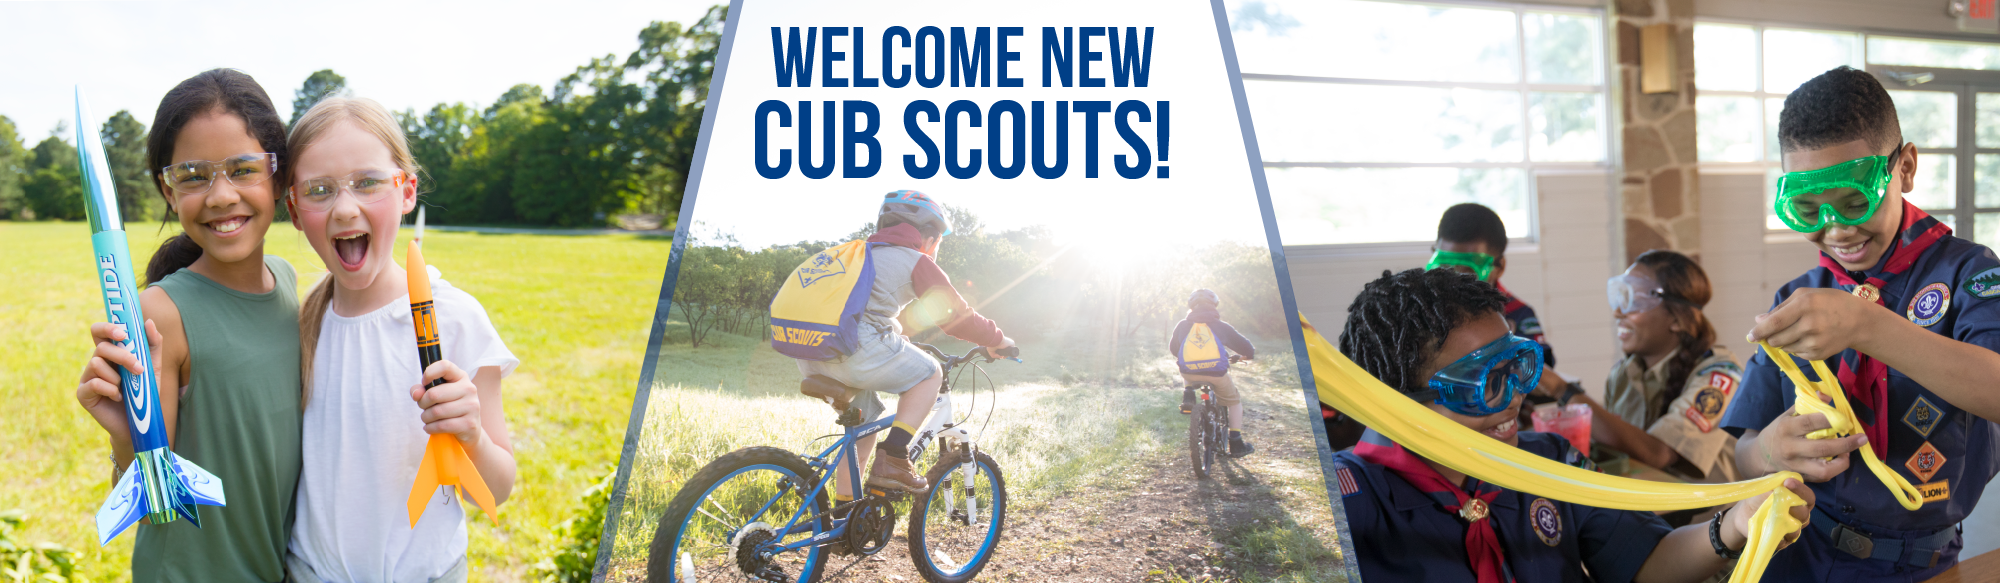 Welcome new Cub Scouts!